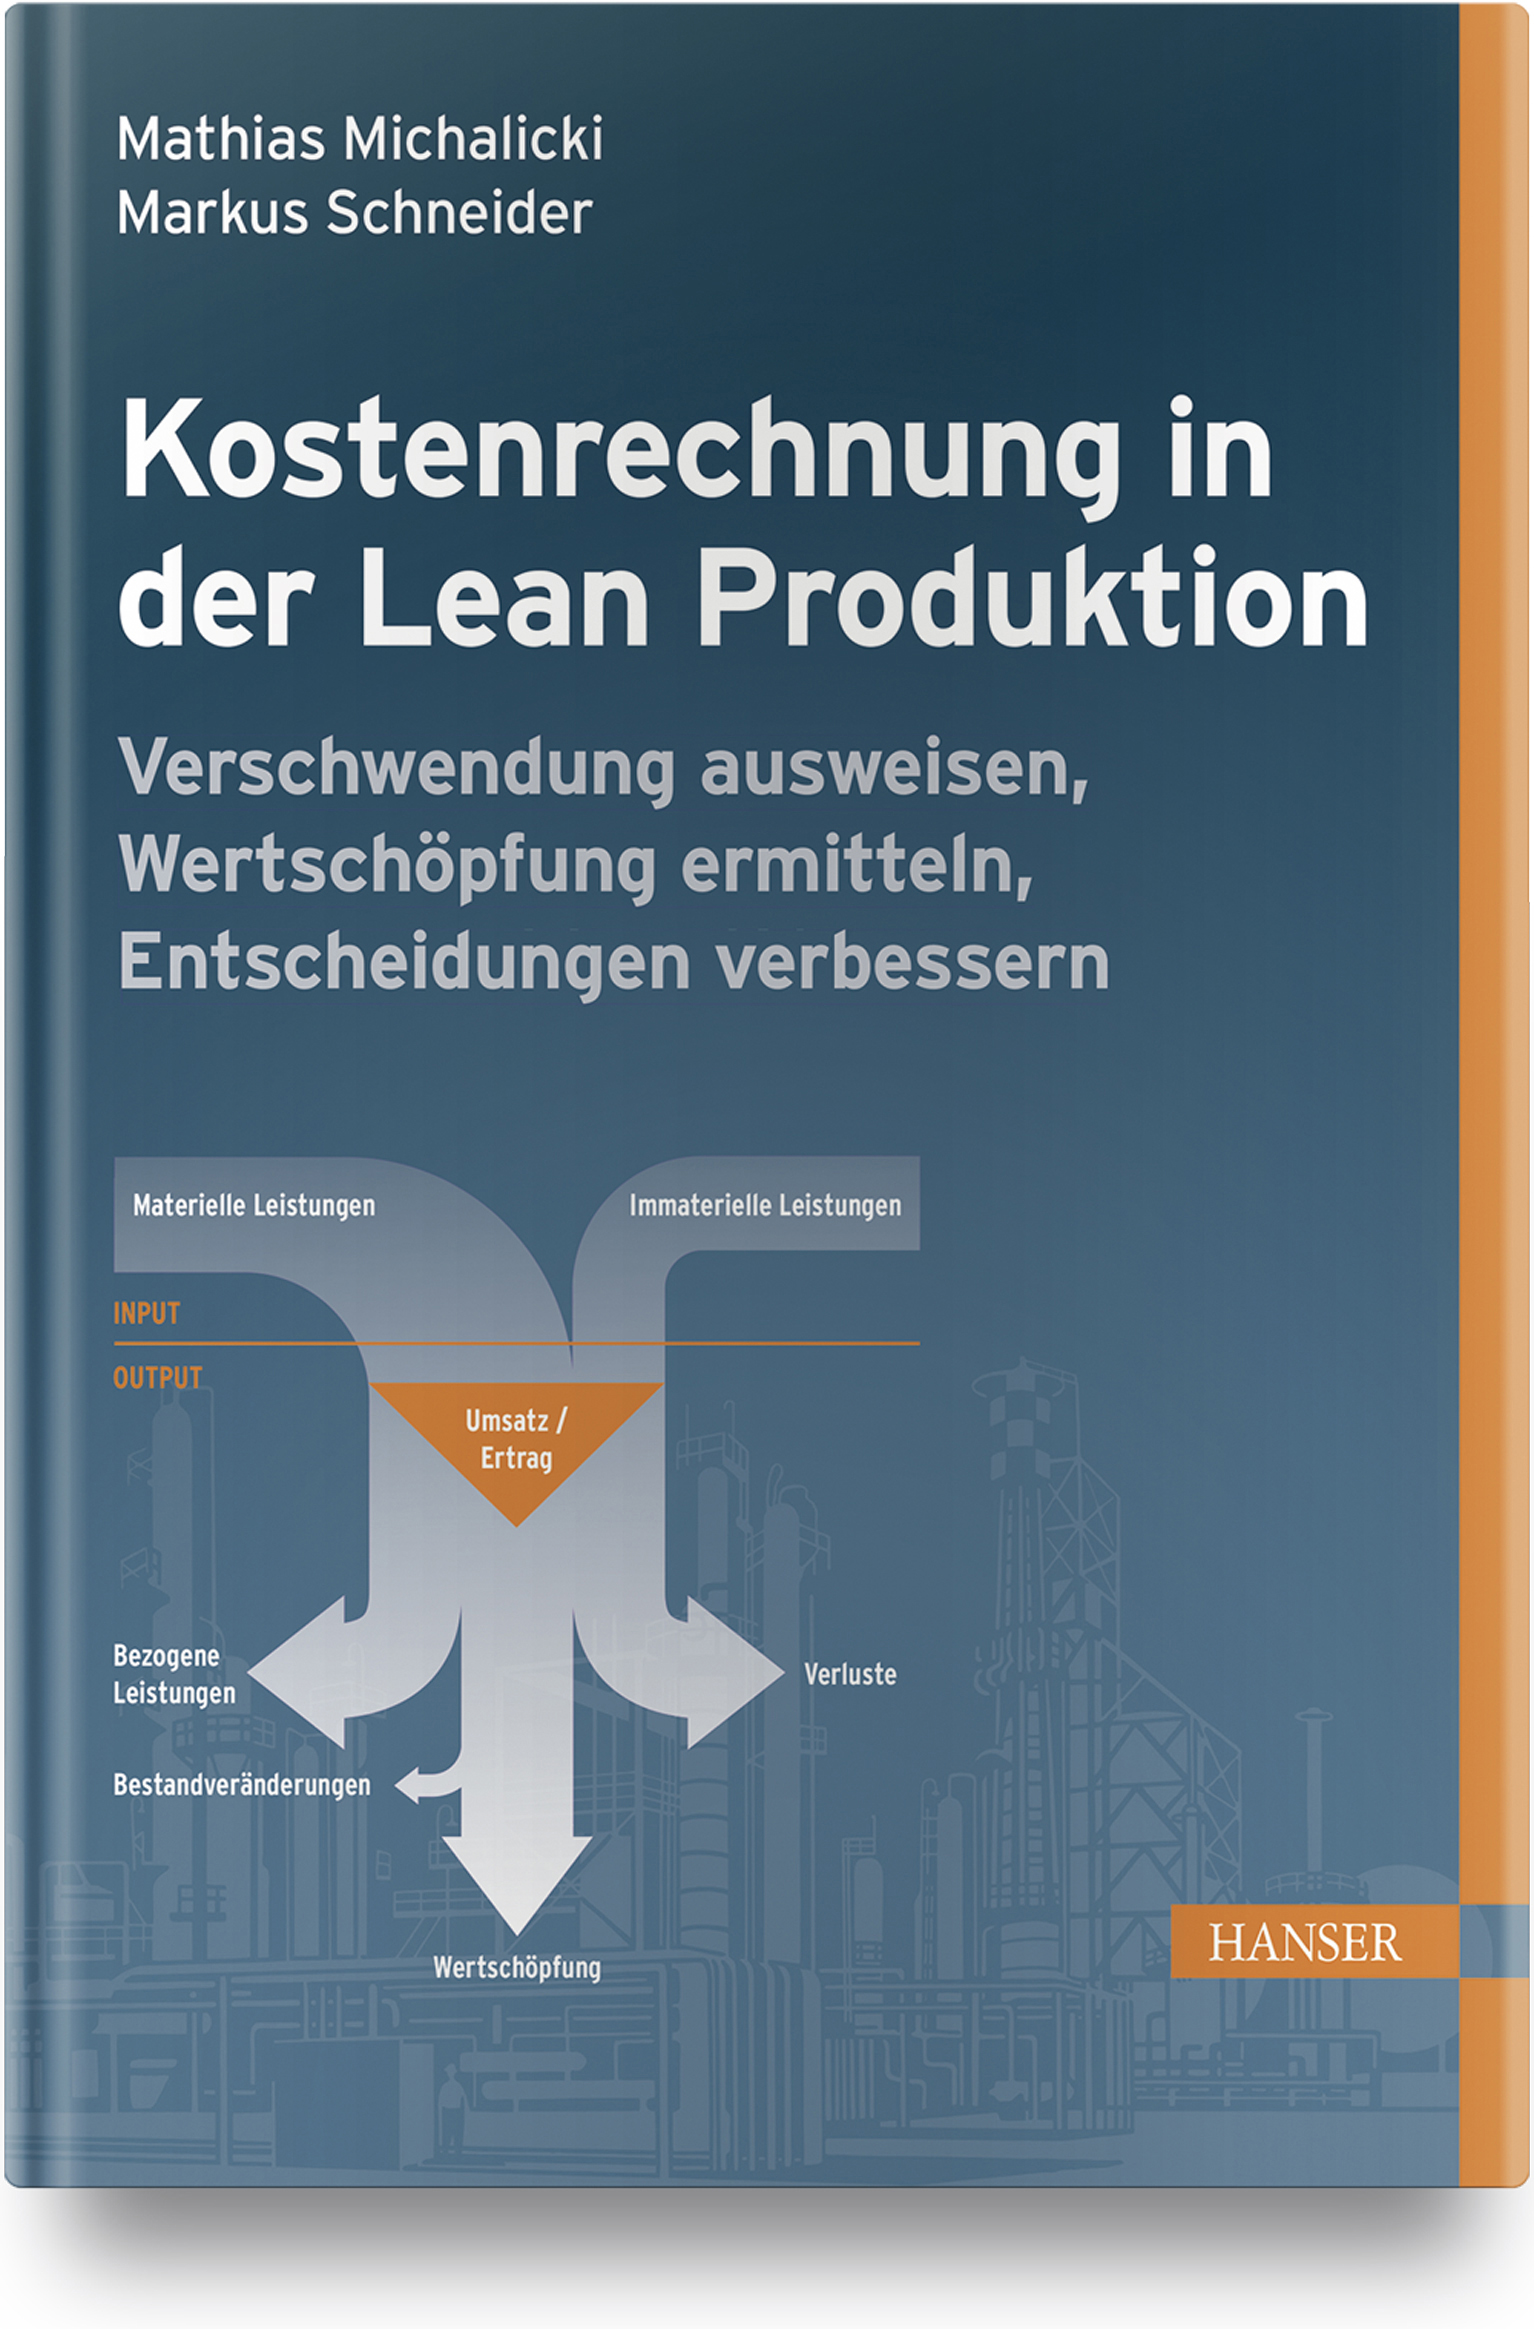 Michalicki, Kostenrechnung in der Lean Produktion, 978-3-446-46568-8